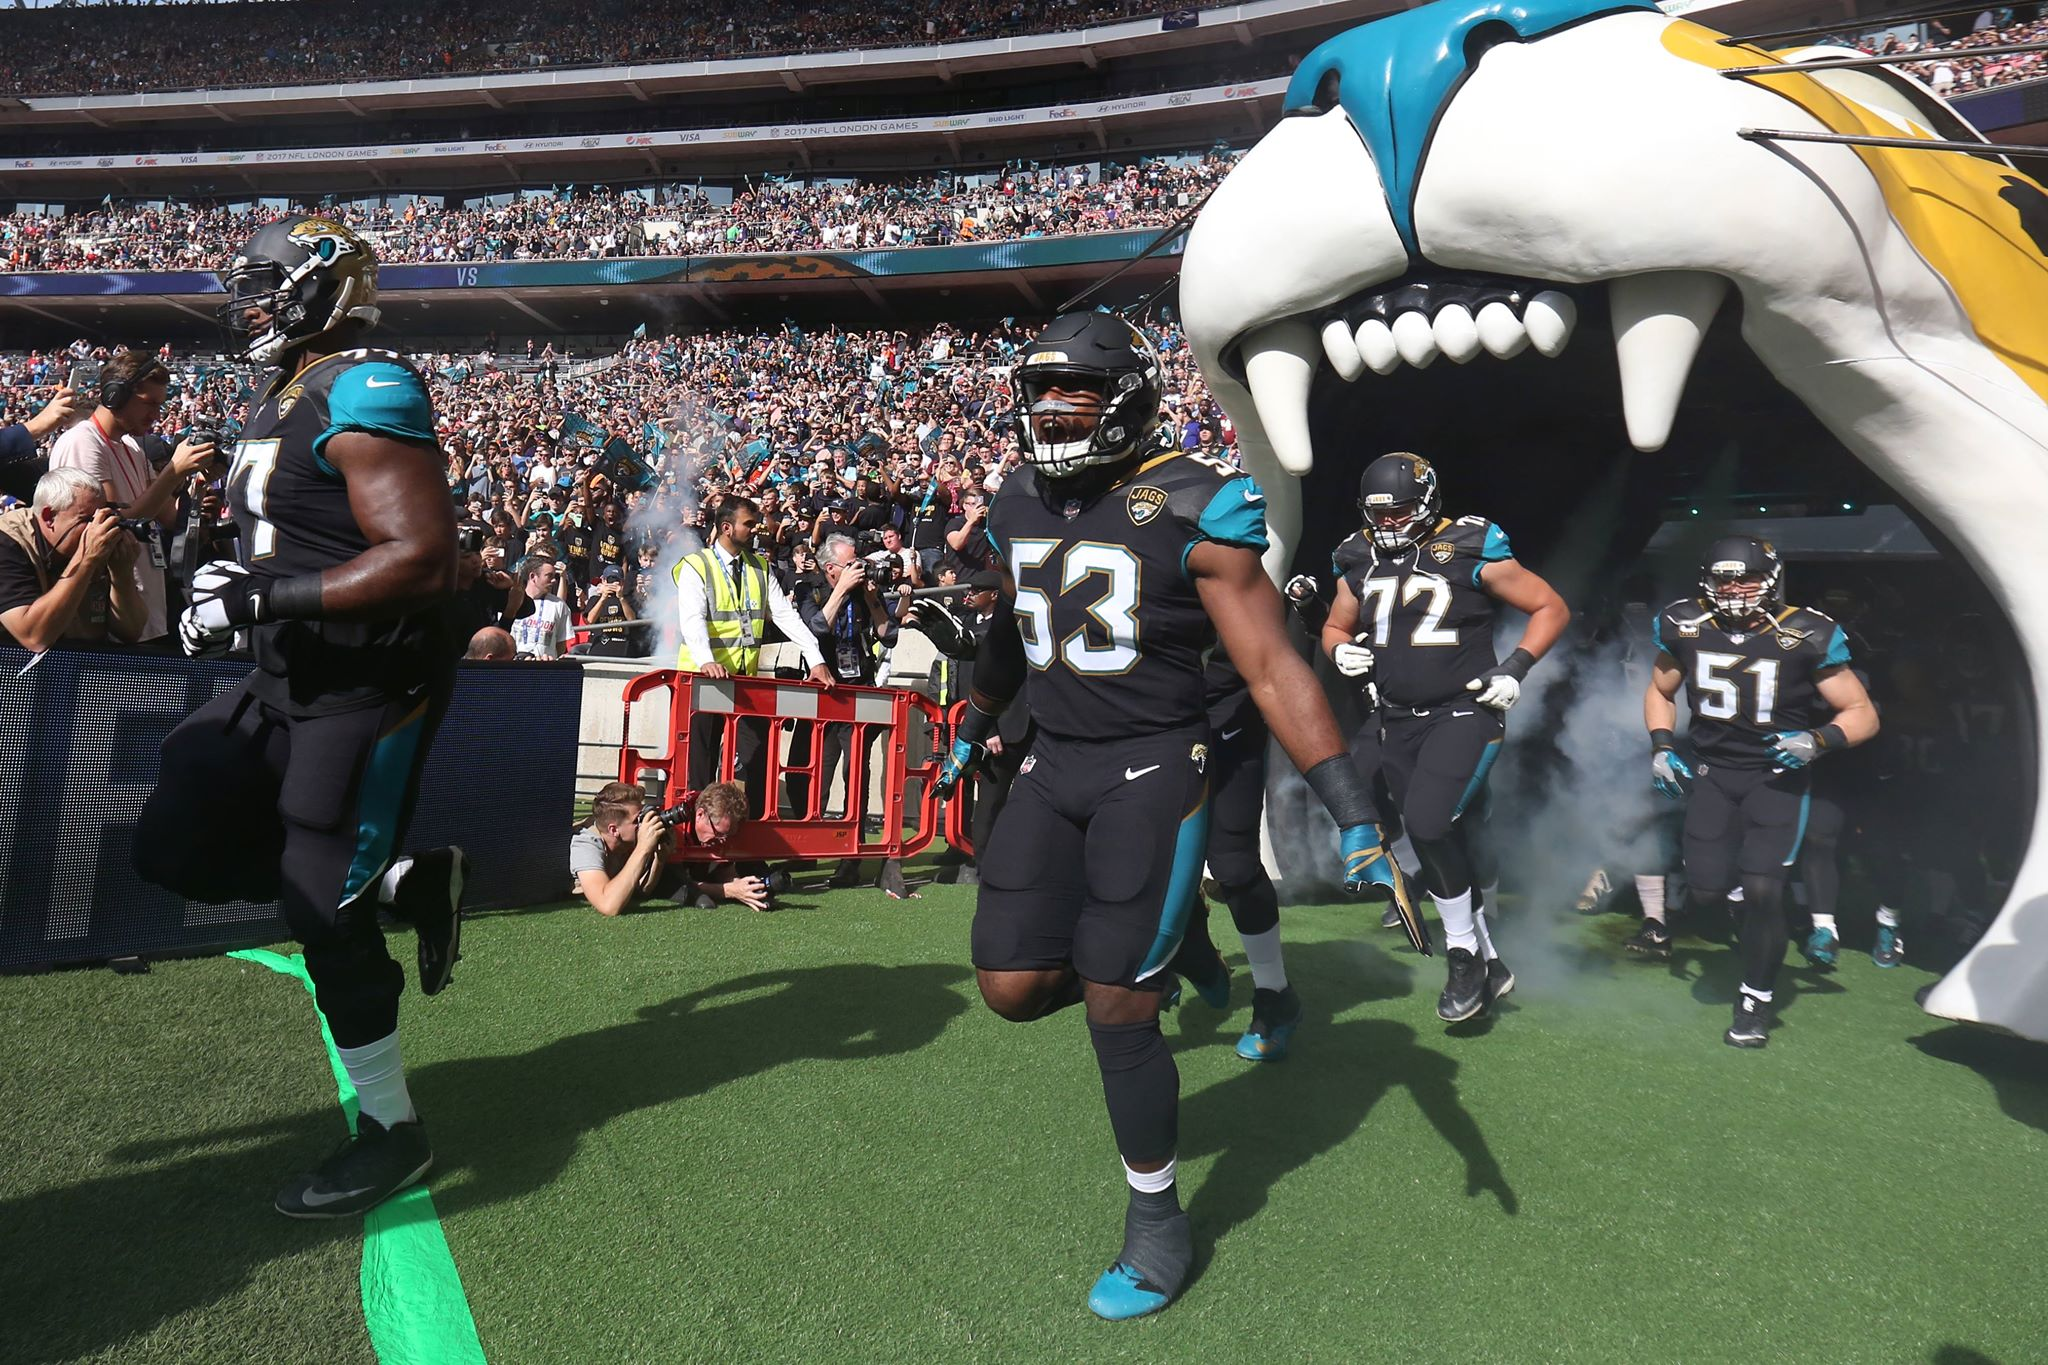 Jaguars arrive on the pitch at Wembley, it could soon be their permanent home. Image: PA Images